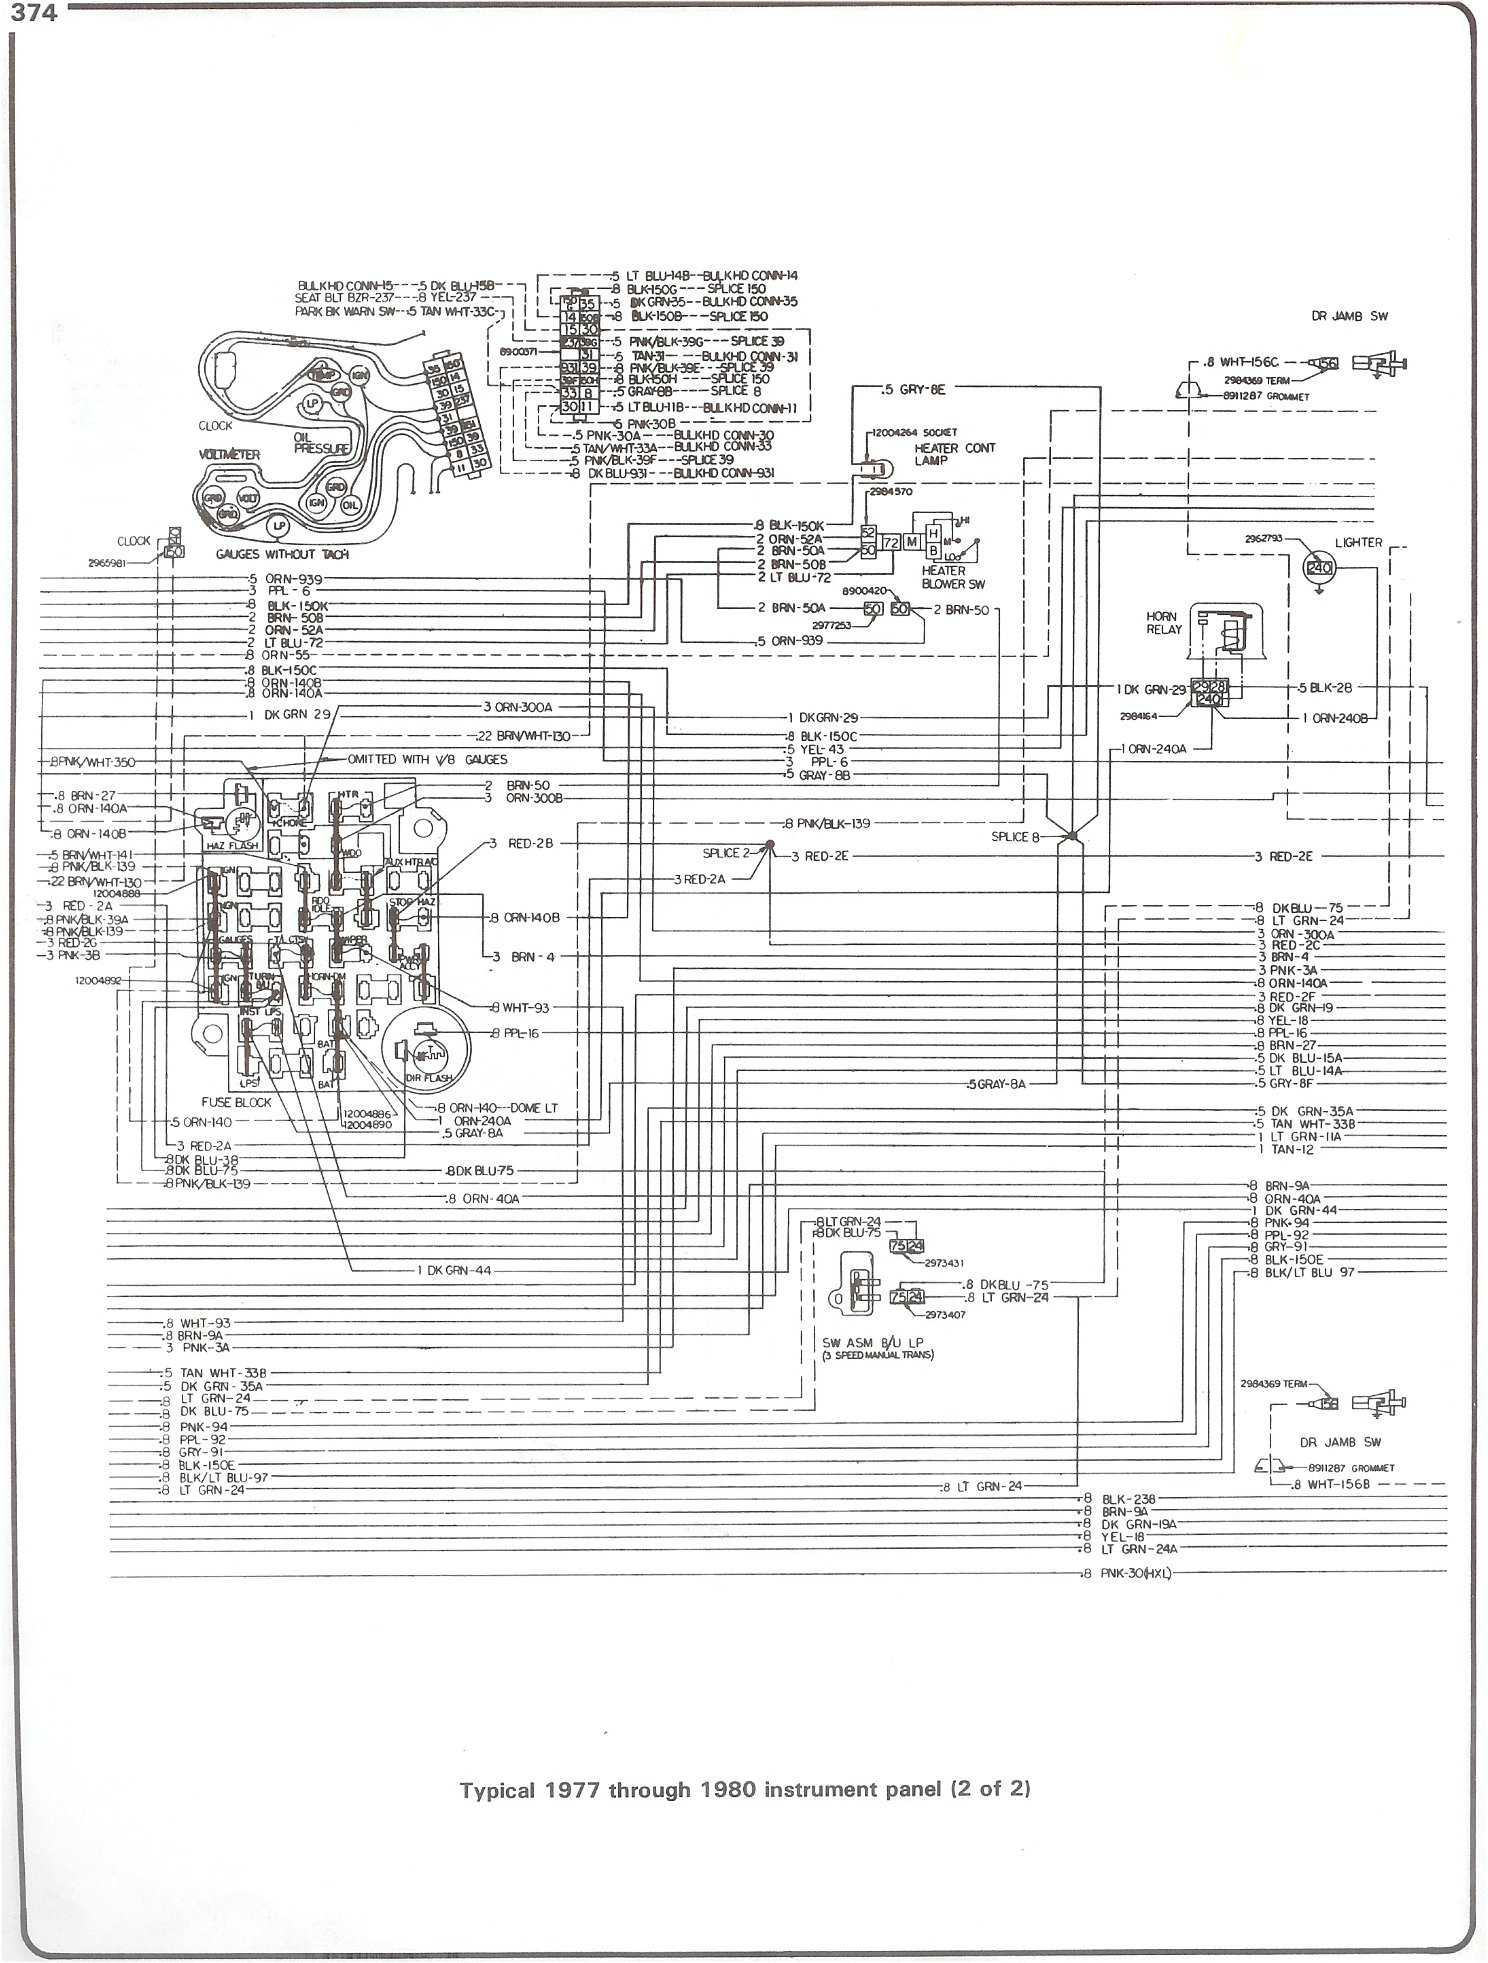 Complete 73 87 Wiring Diagrams 1966 Gmc 1 2 Ton Diagram 77 80 Intrument Panel Page